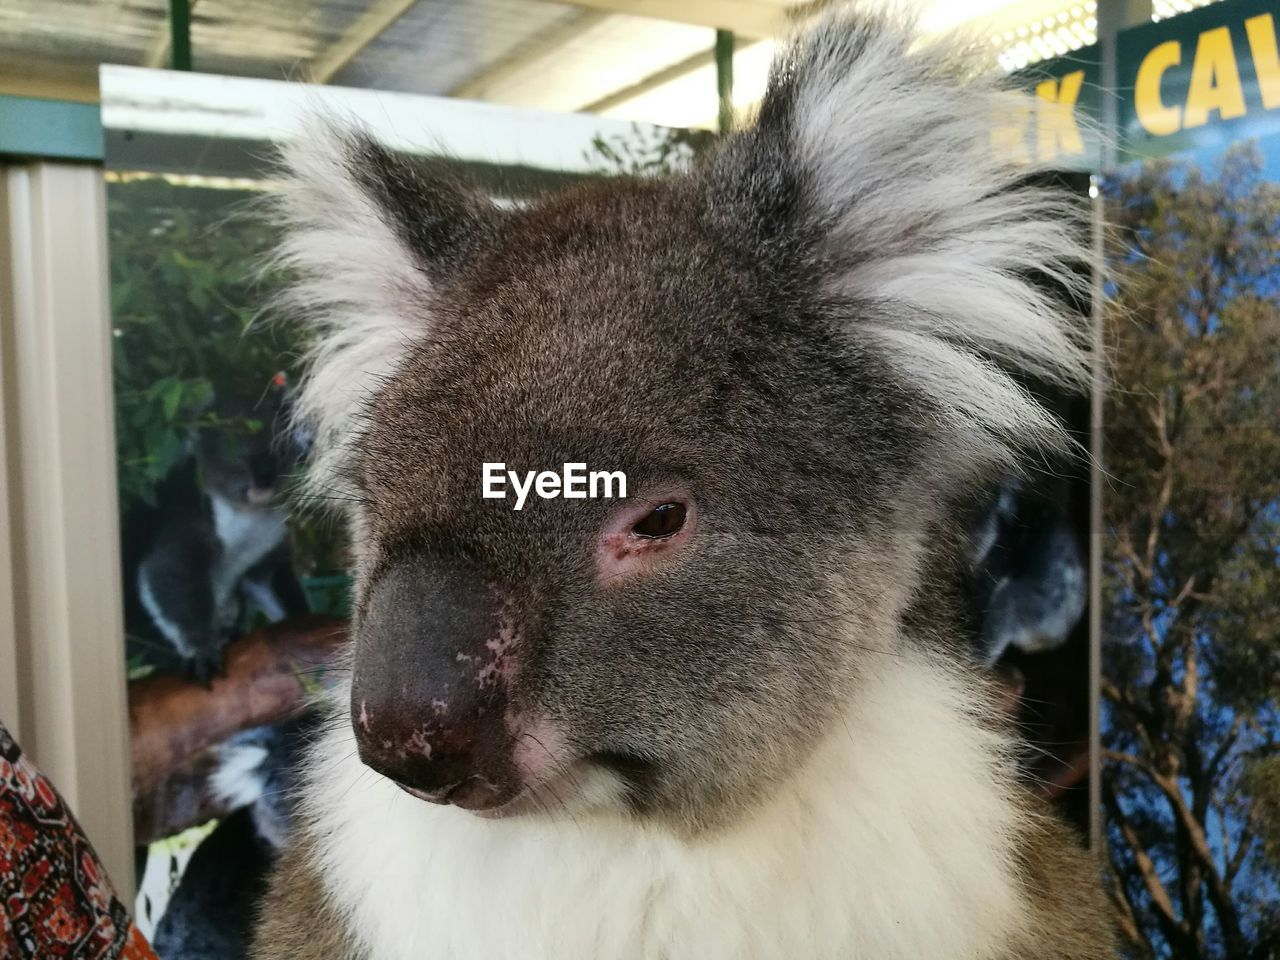 mammal, animal, animal themes, one animal, vertebrate, close-up, focus on foreground, animal wildlife, no people, portrait, domestic animals, domestic, pets, koala, looking, day, animals in the wild, outdoors, animal head, animal body part, herbivorous, whisker